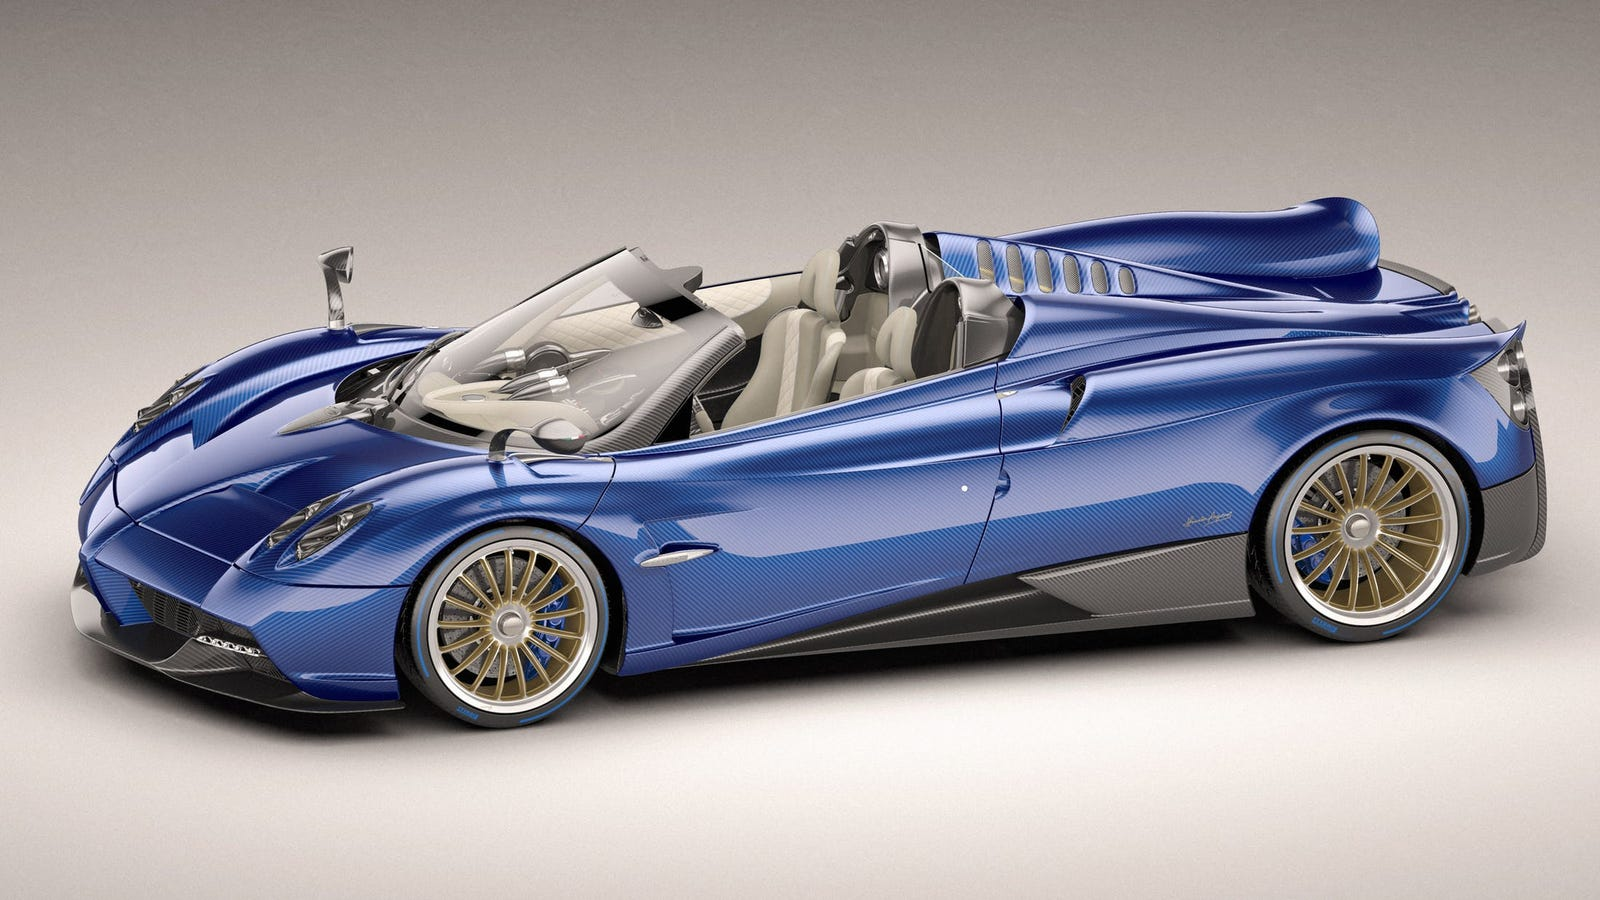 The New Pagani Huayra Roadster Is A Gorgeously Complex